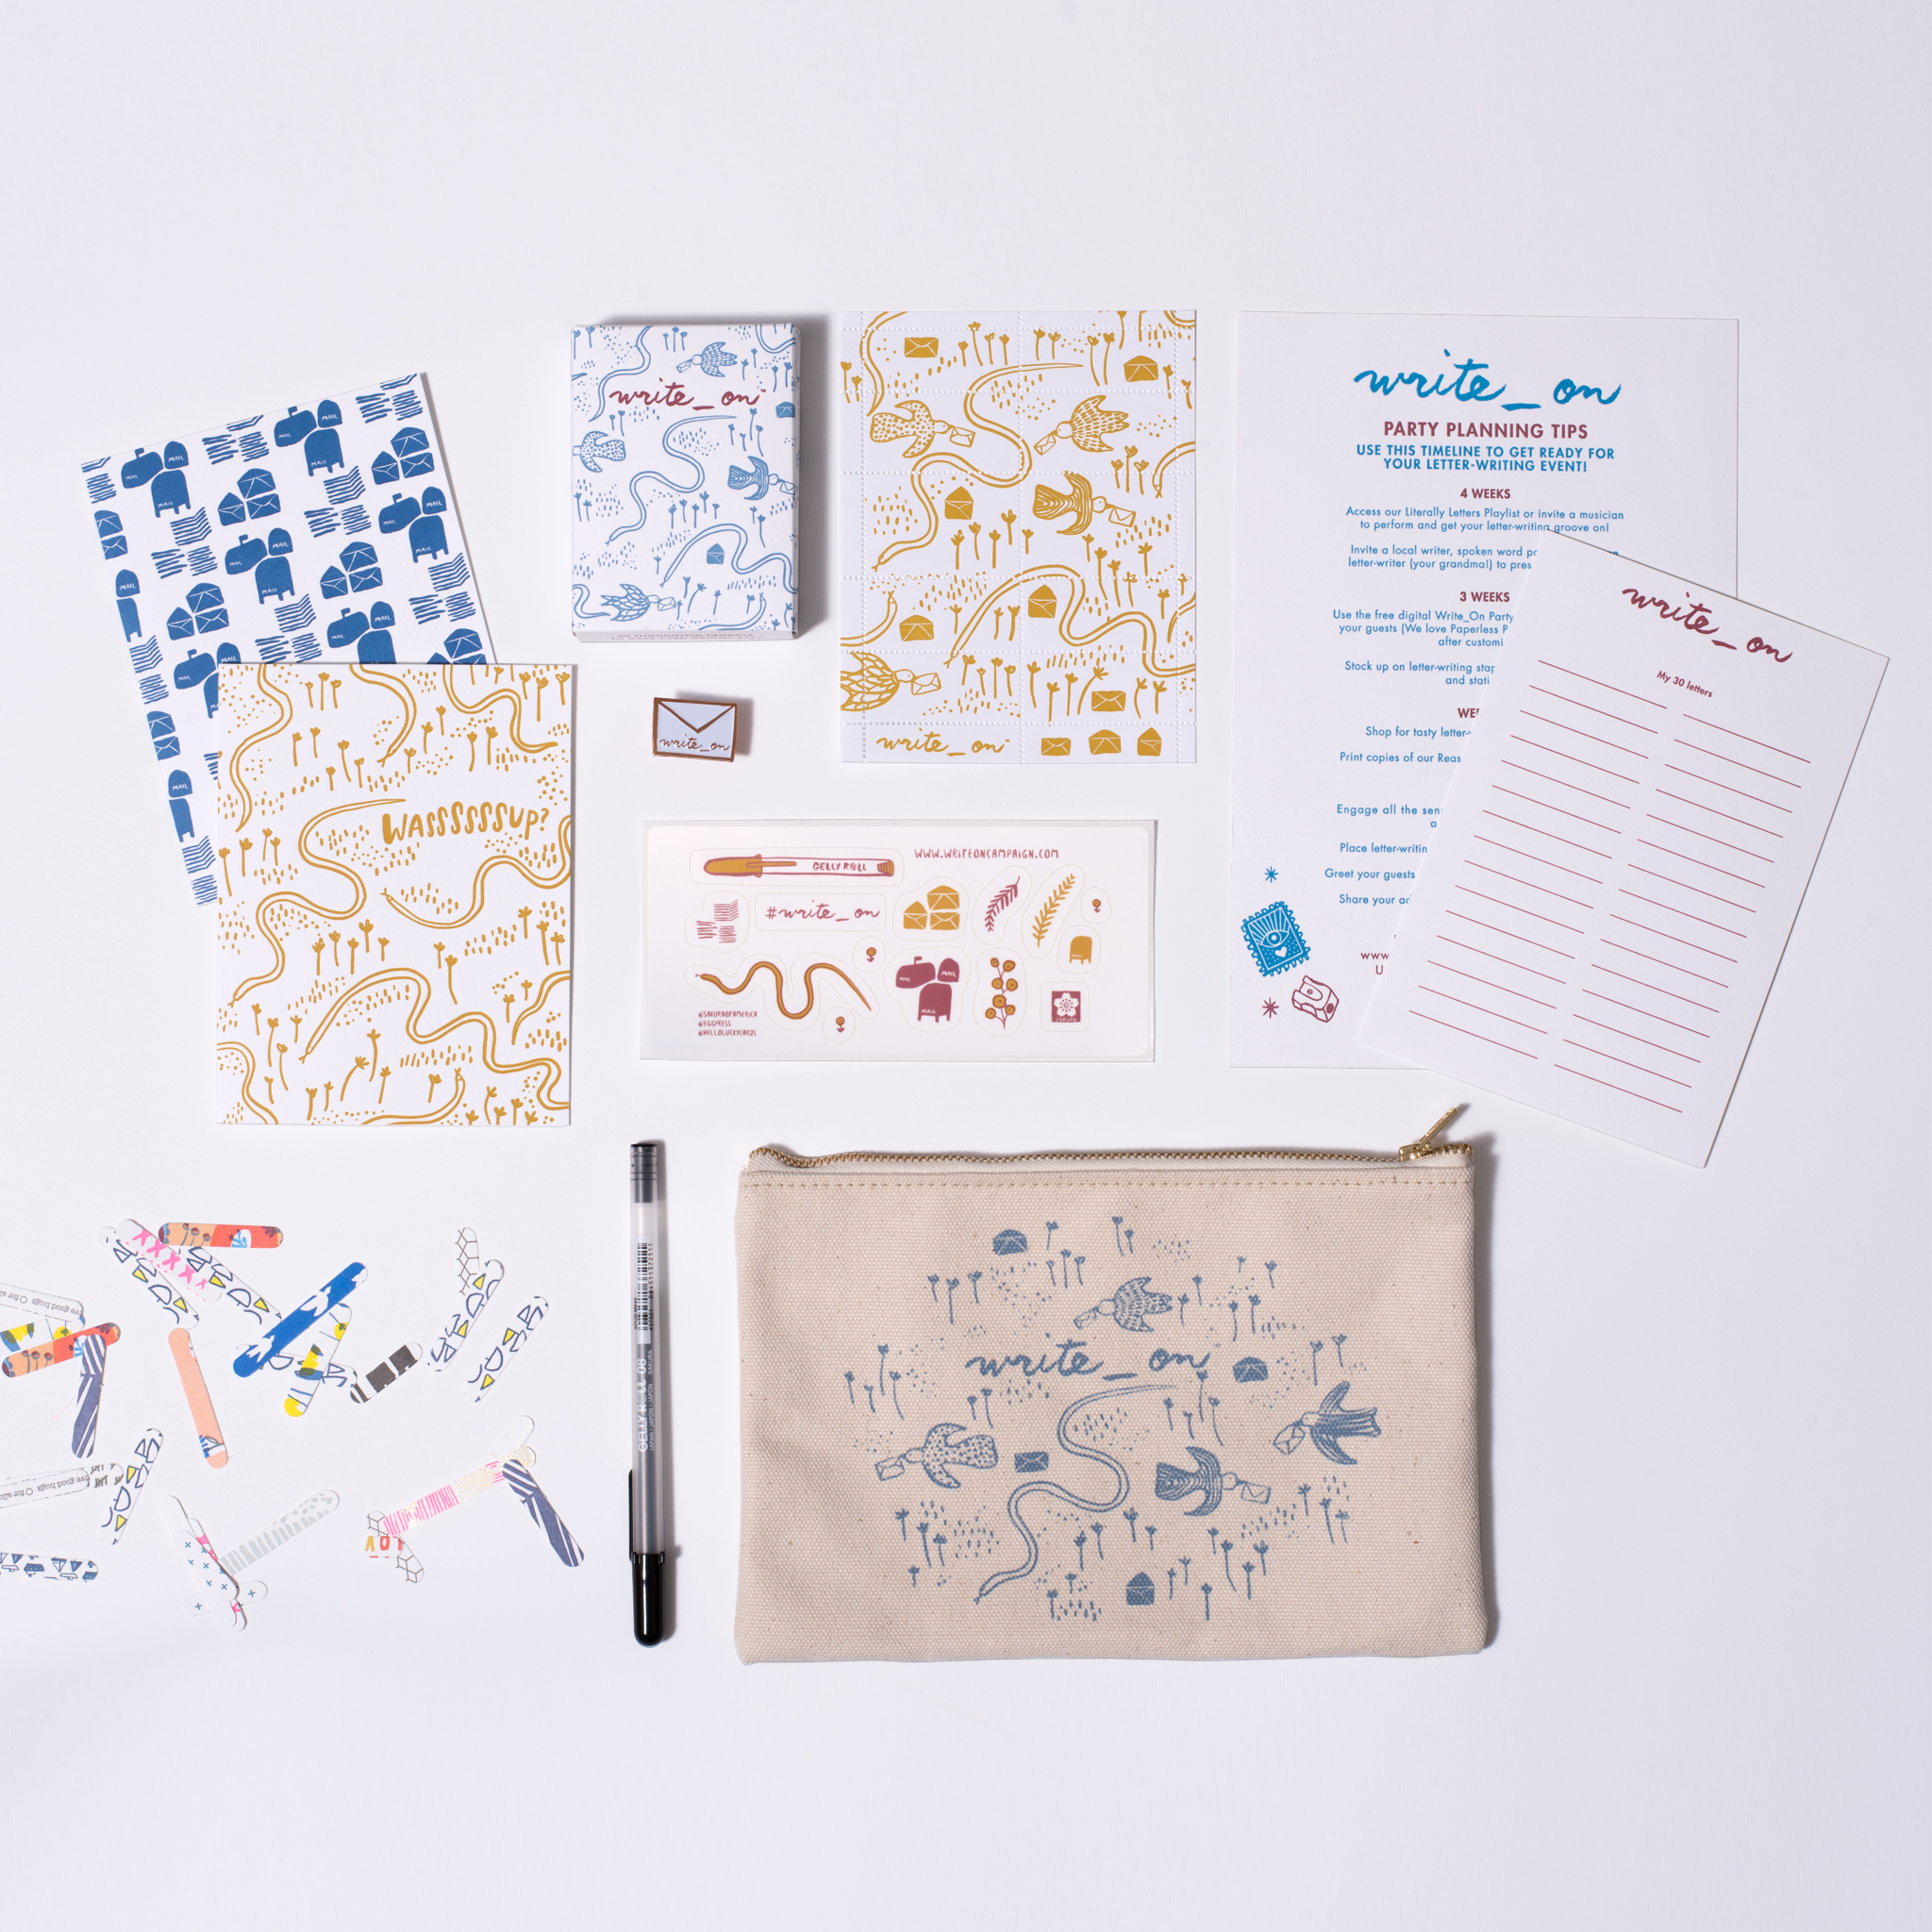 Letter Writer Party Pack - click through to order